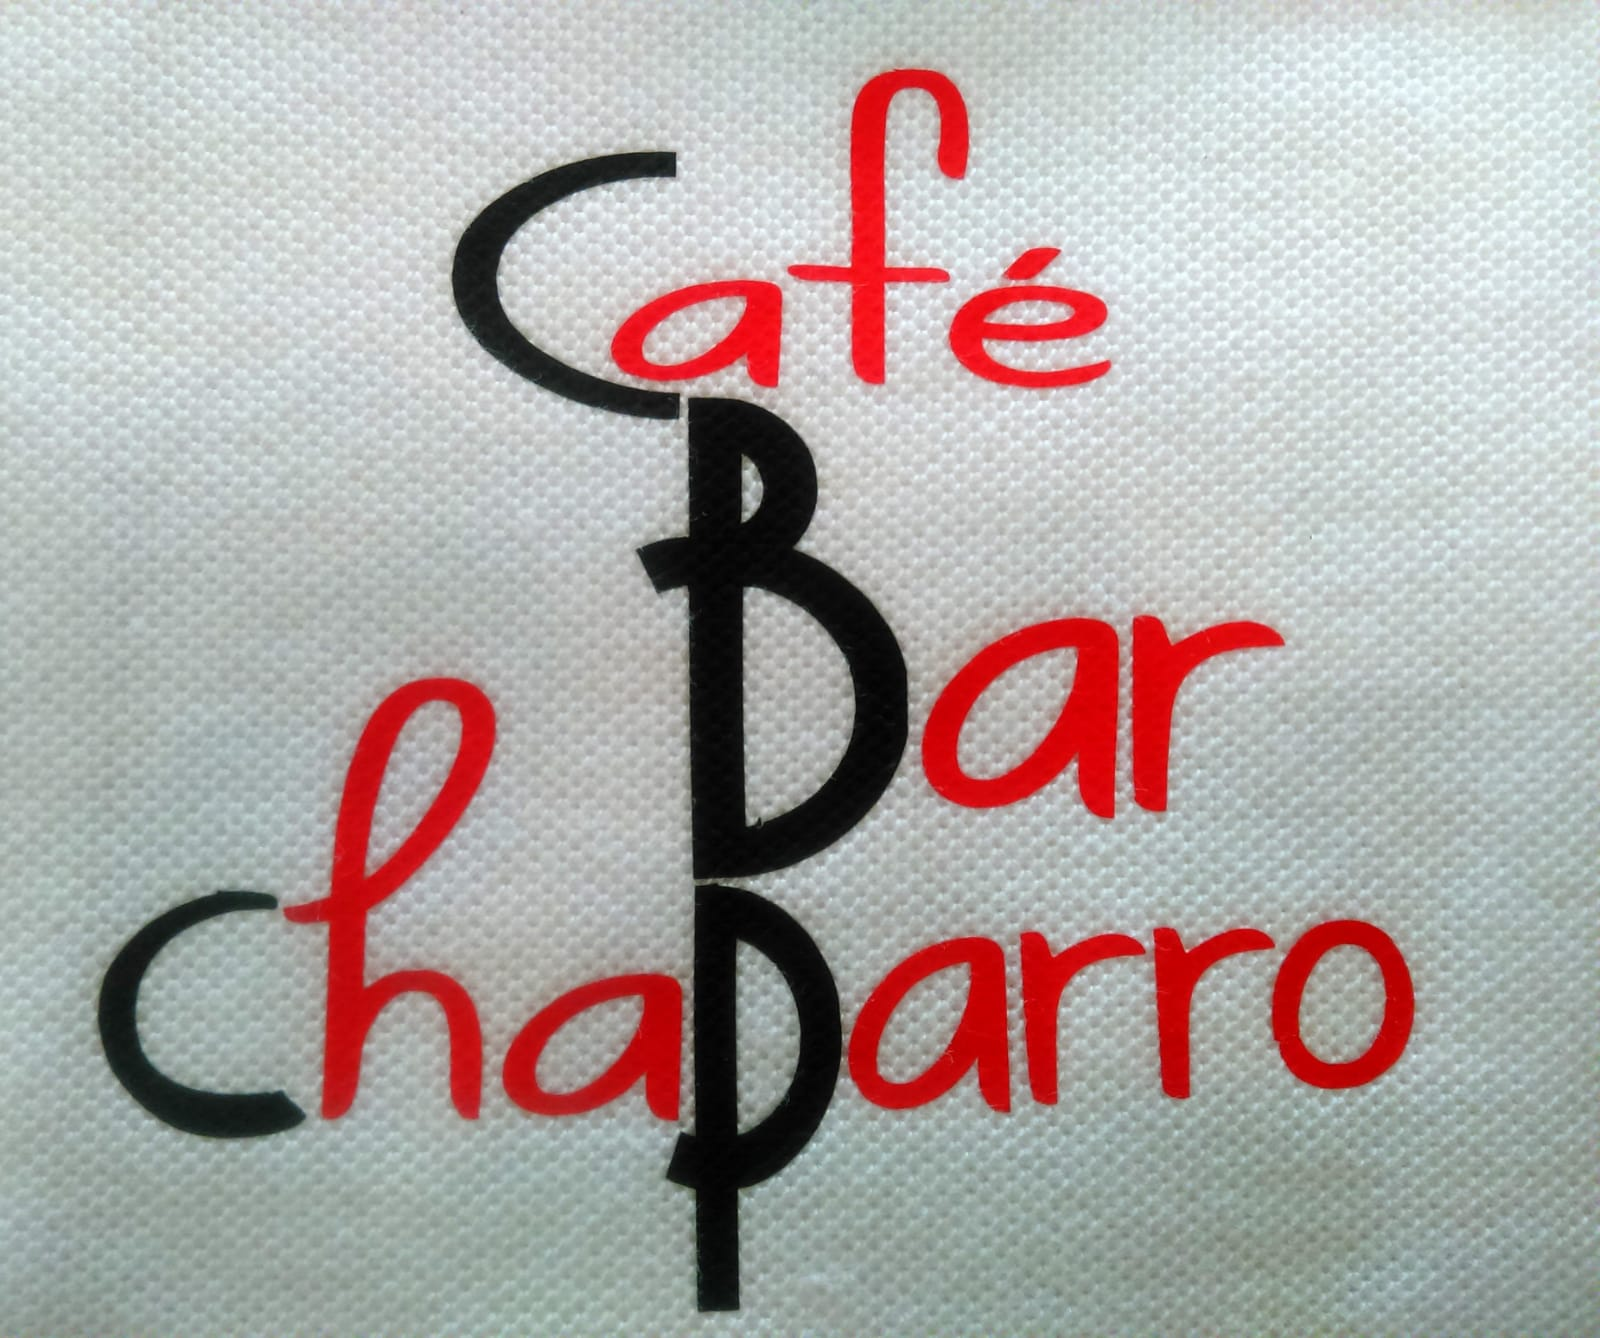 Cafe Bar Chaparro